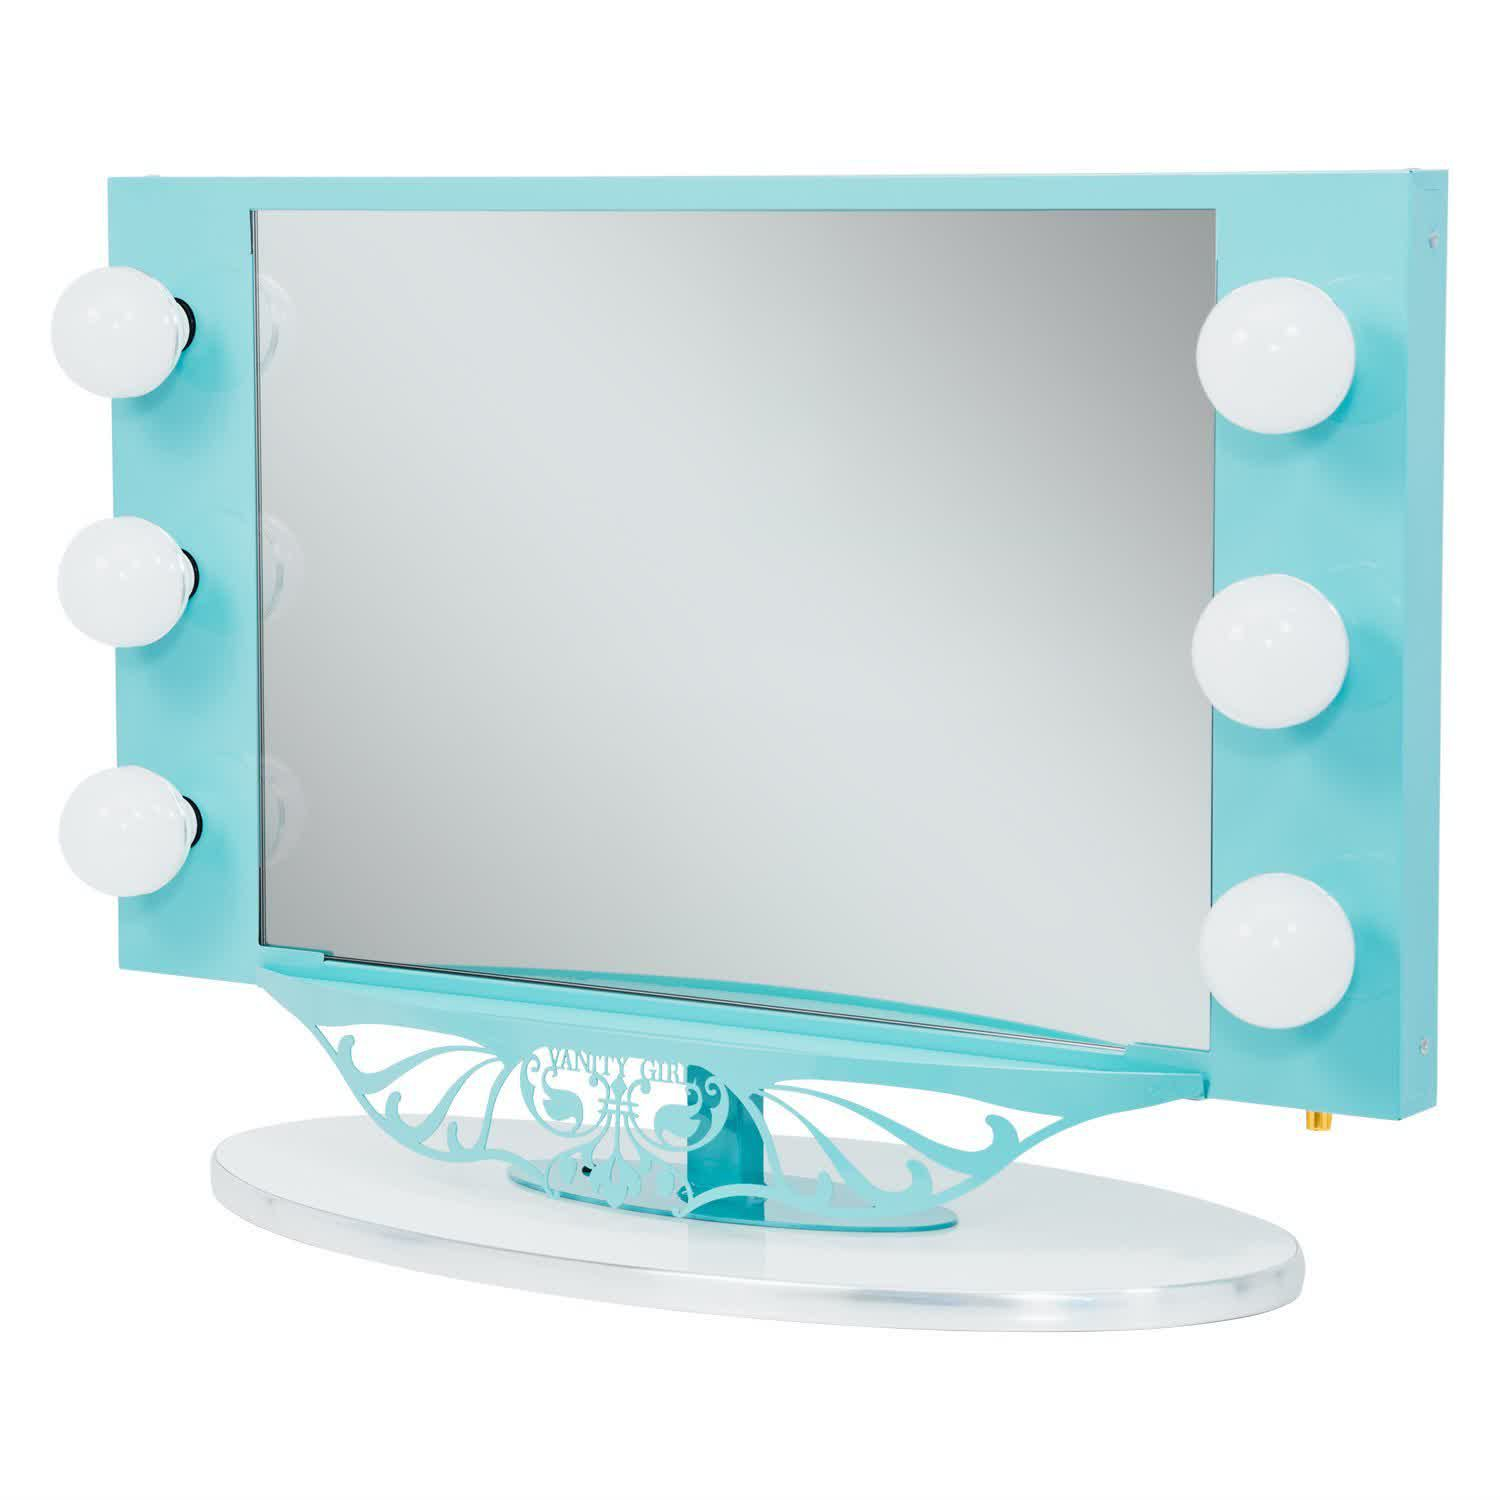 Vanity Girl Lighted Mirror : Best Time To Buy Bedroom Furniture - Bedroom, Bathroom, Living, Kitchen